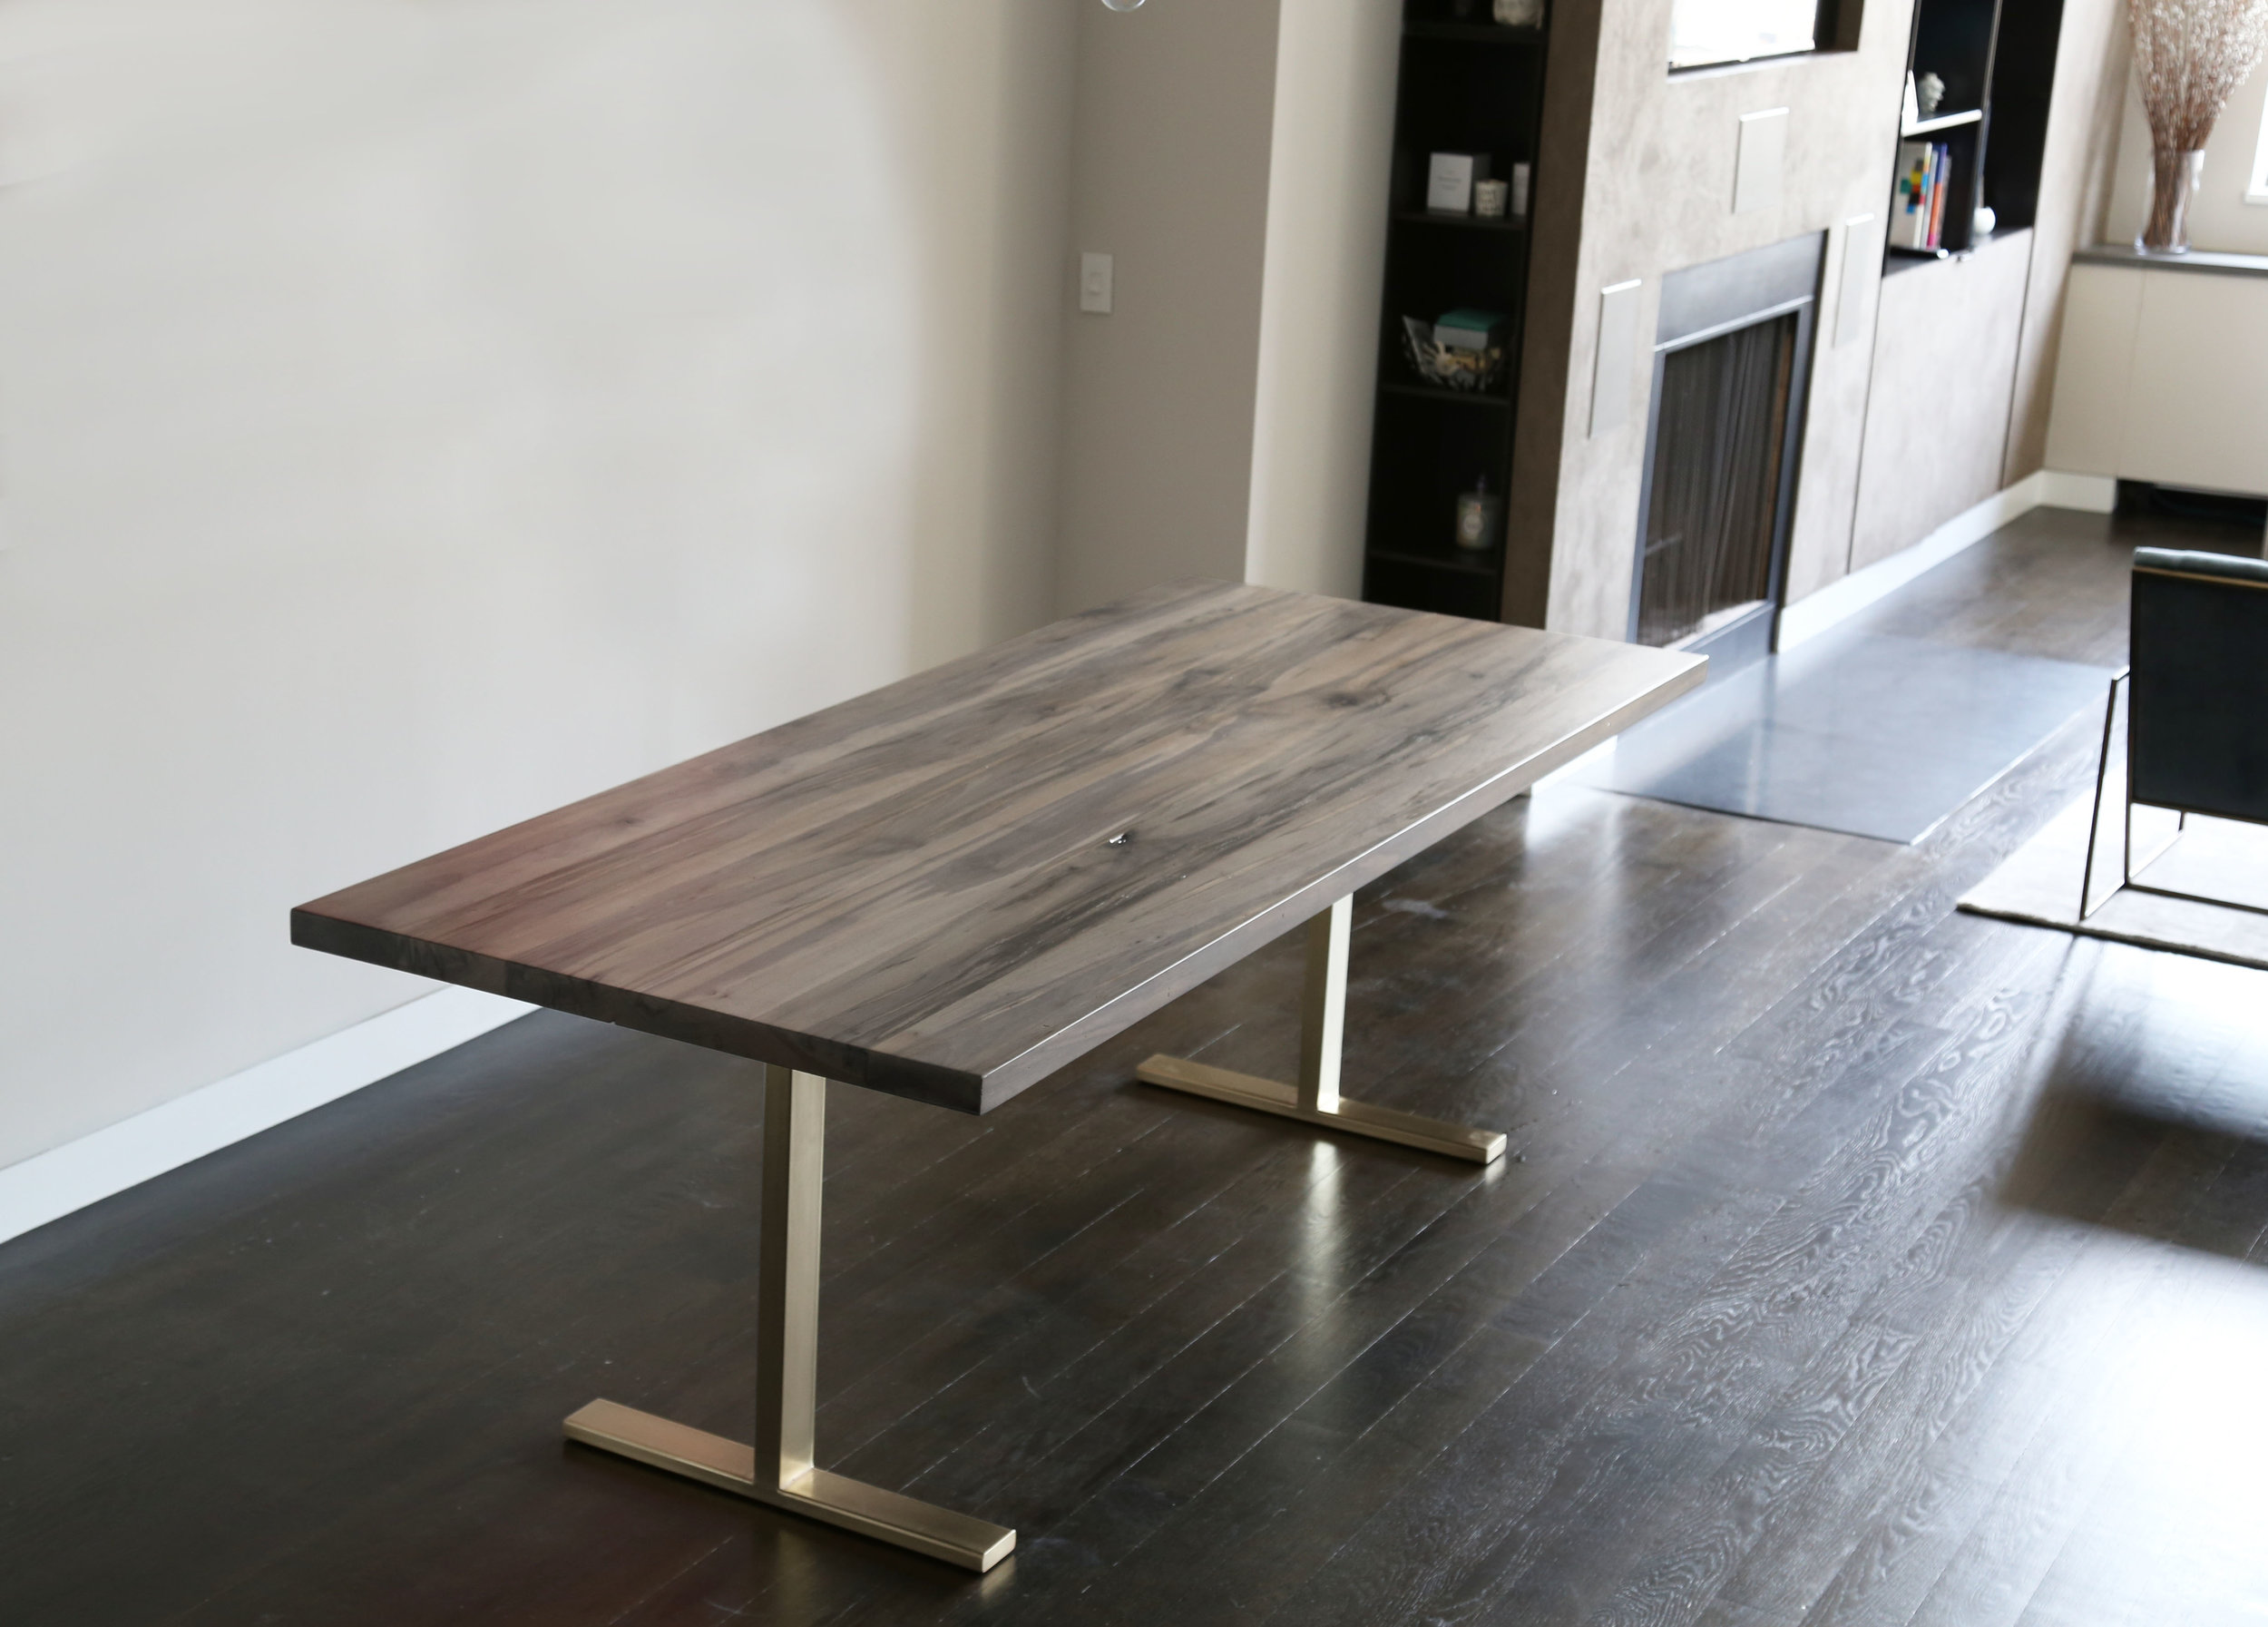 Fumed_Maple_Dining_Table-11.3 copy.jpg